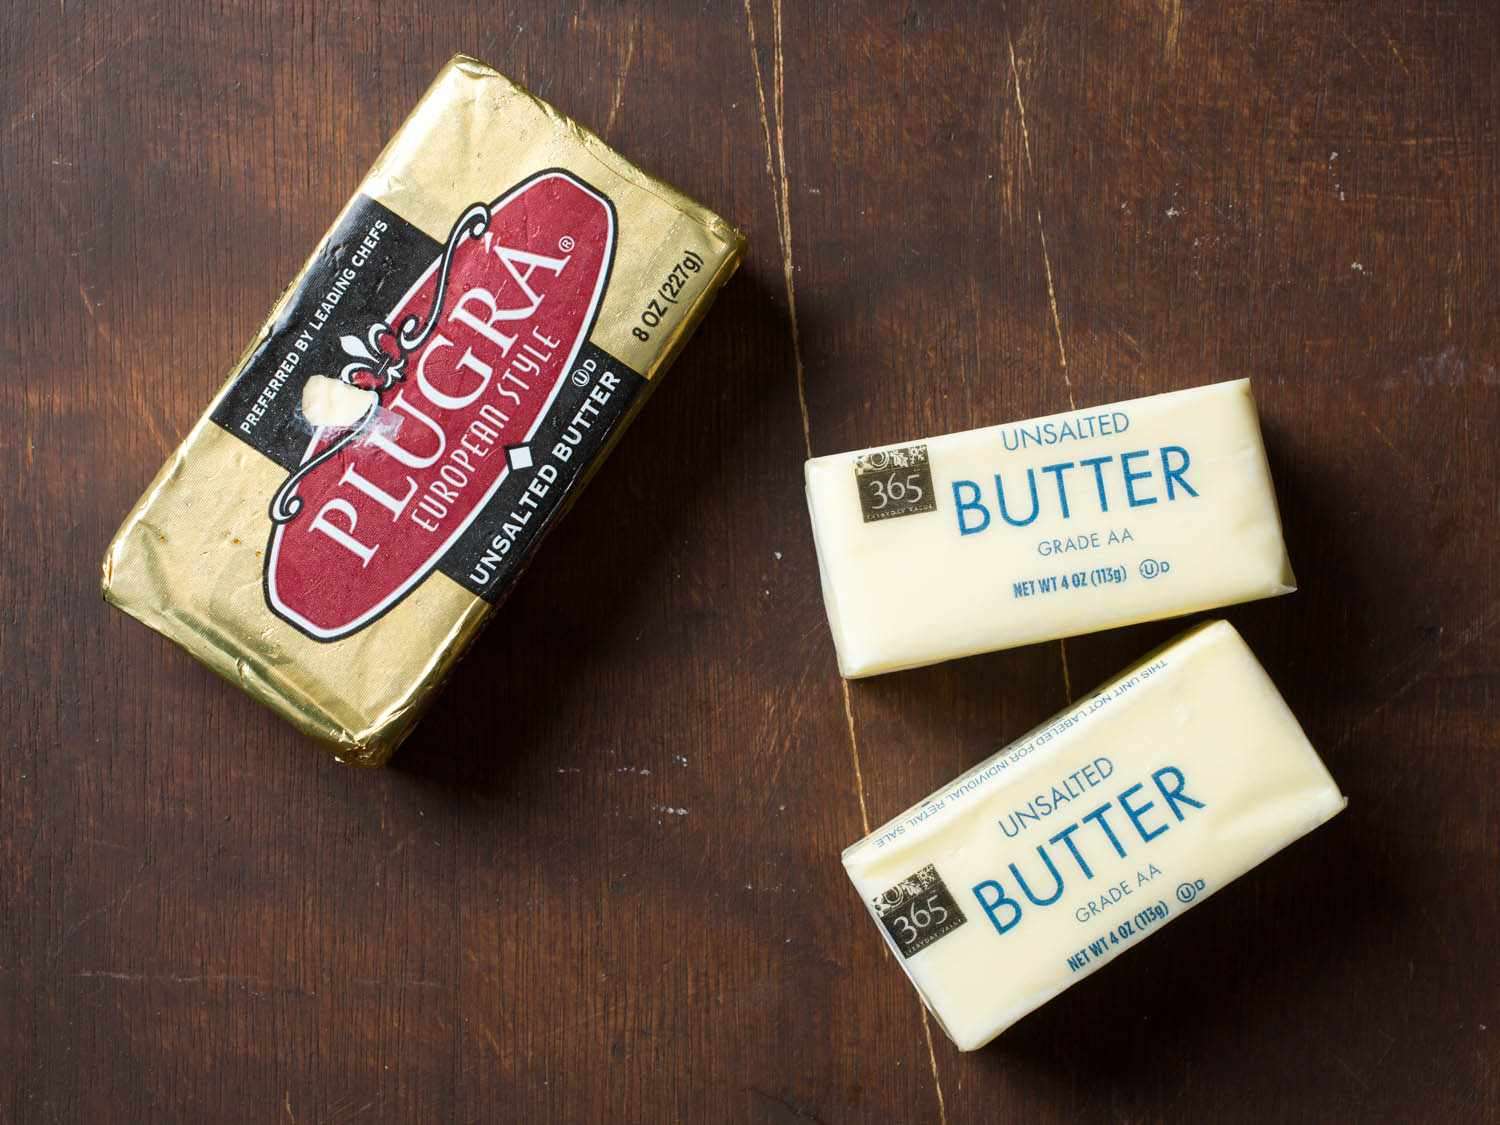 Overhead shot of three packages of butter (Plugra European-style butter and two packages of American-style unsalted butter) on a wooden background